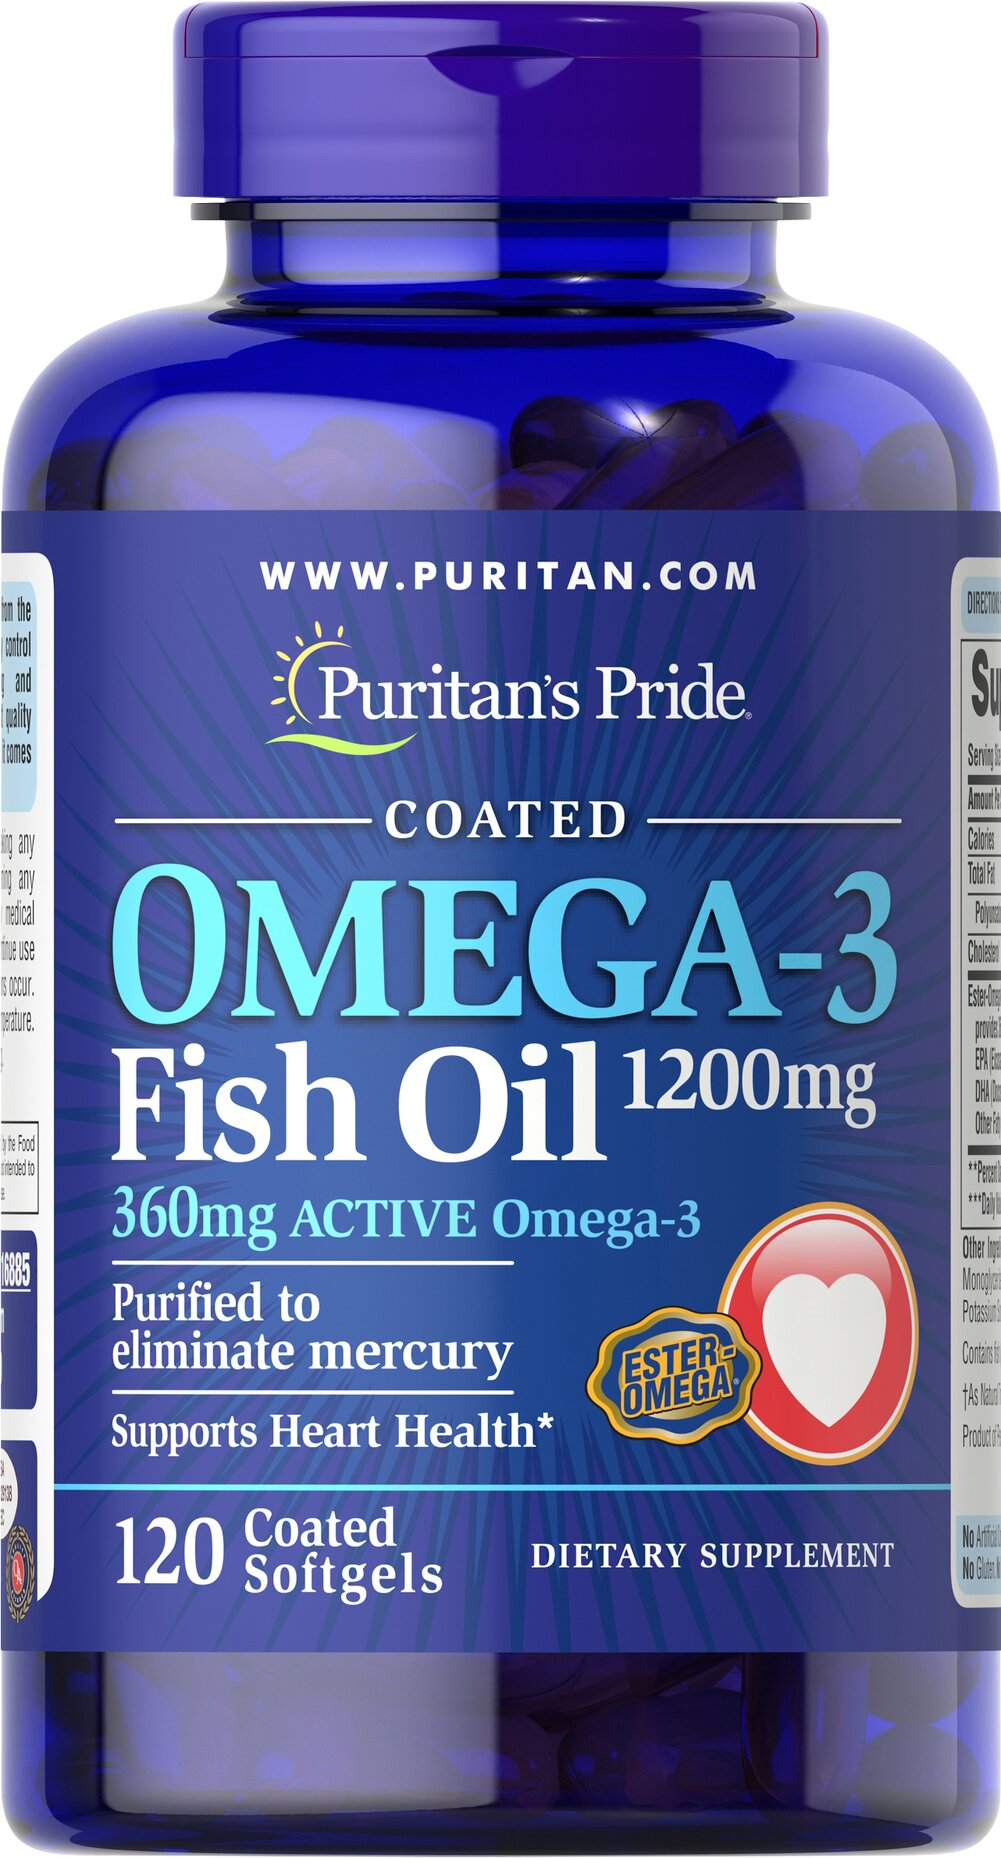 "Omega-3 Fish Oil Coated 1200 mg <p><span></span>Provides 360mg of Total Omega-3 Fatty Acids.</p> <p><span></span>Supports heart health.**</p> <p><span></span>Purified to eliminate mercury.</p> <p>Our Ester-Omega® Omega-3 Fish Oil provides 360mg of active Omega-3, consisting of EPA, DHA and other fatty acids. EPA & DHA fatty acids are ""good"" fats that can help to balance the ""bad fats"" in your diet, p"